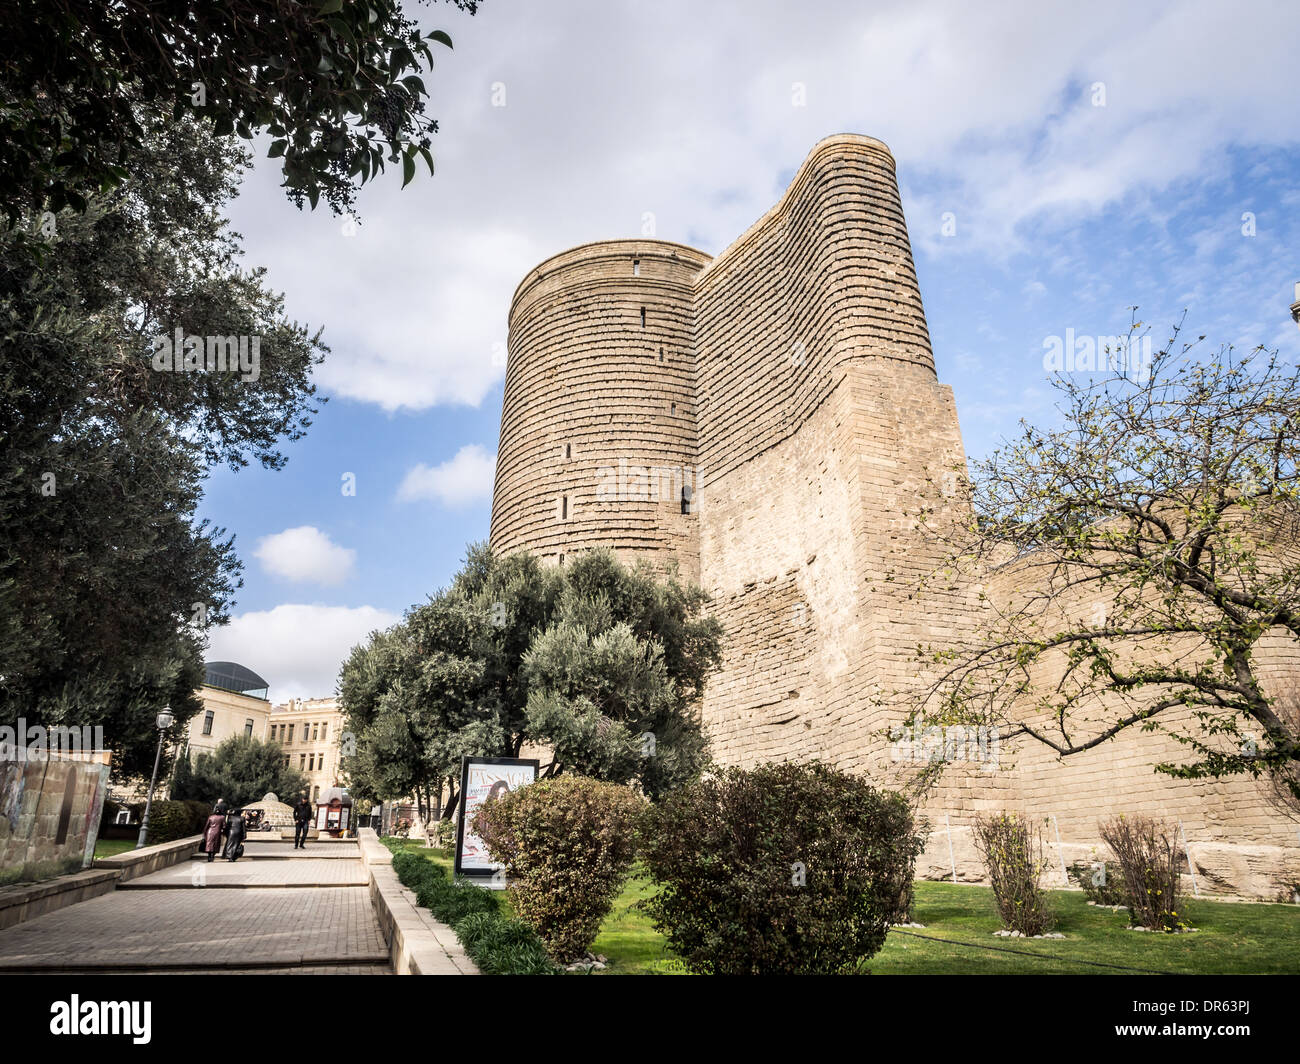 Maiden Tower in the old town of Baku, Azerbaijan. - Stock Image